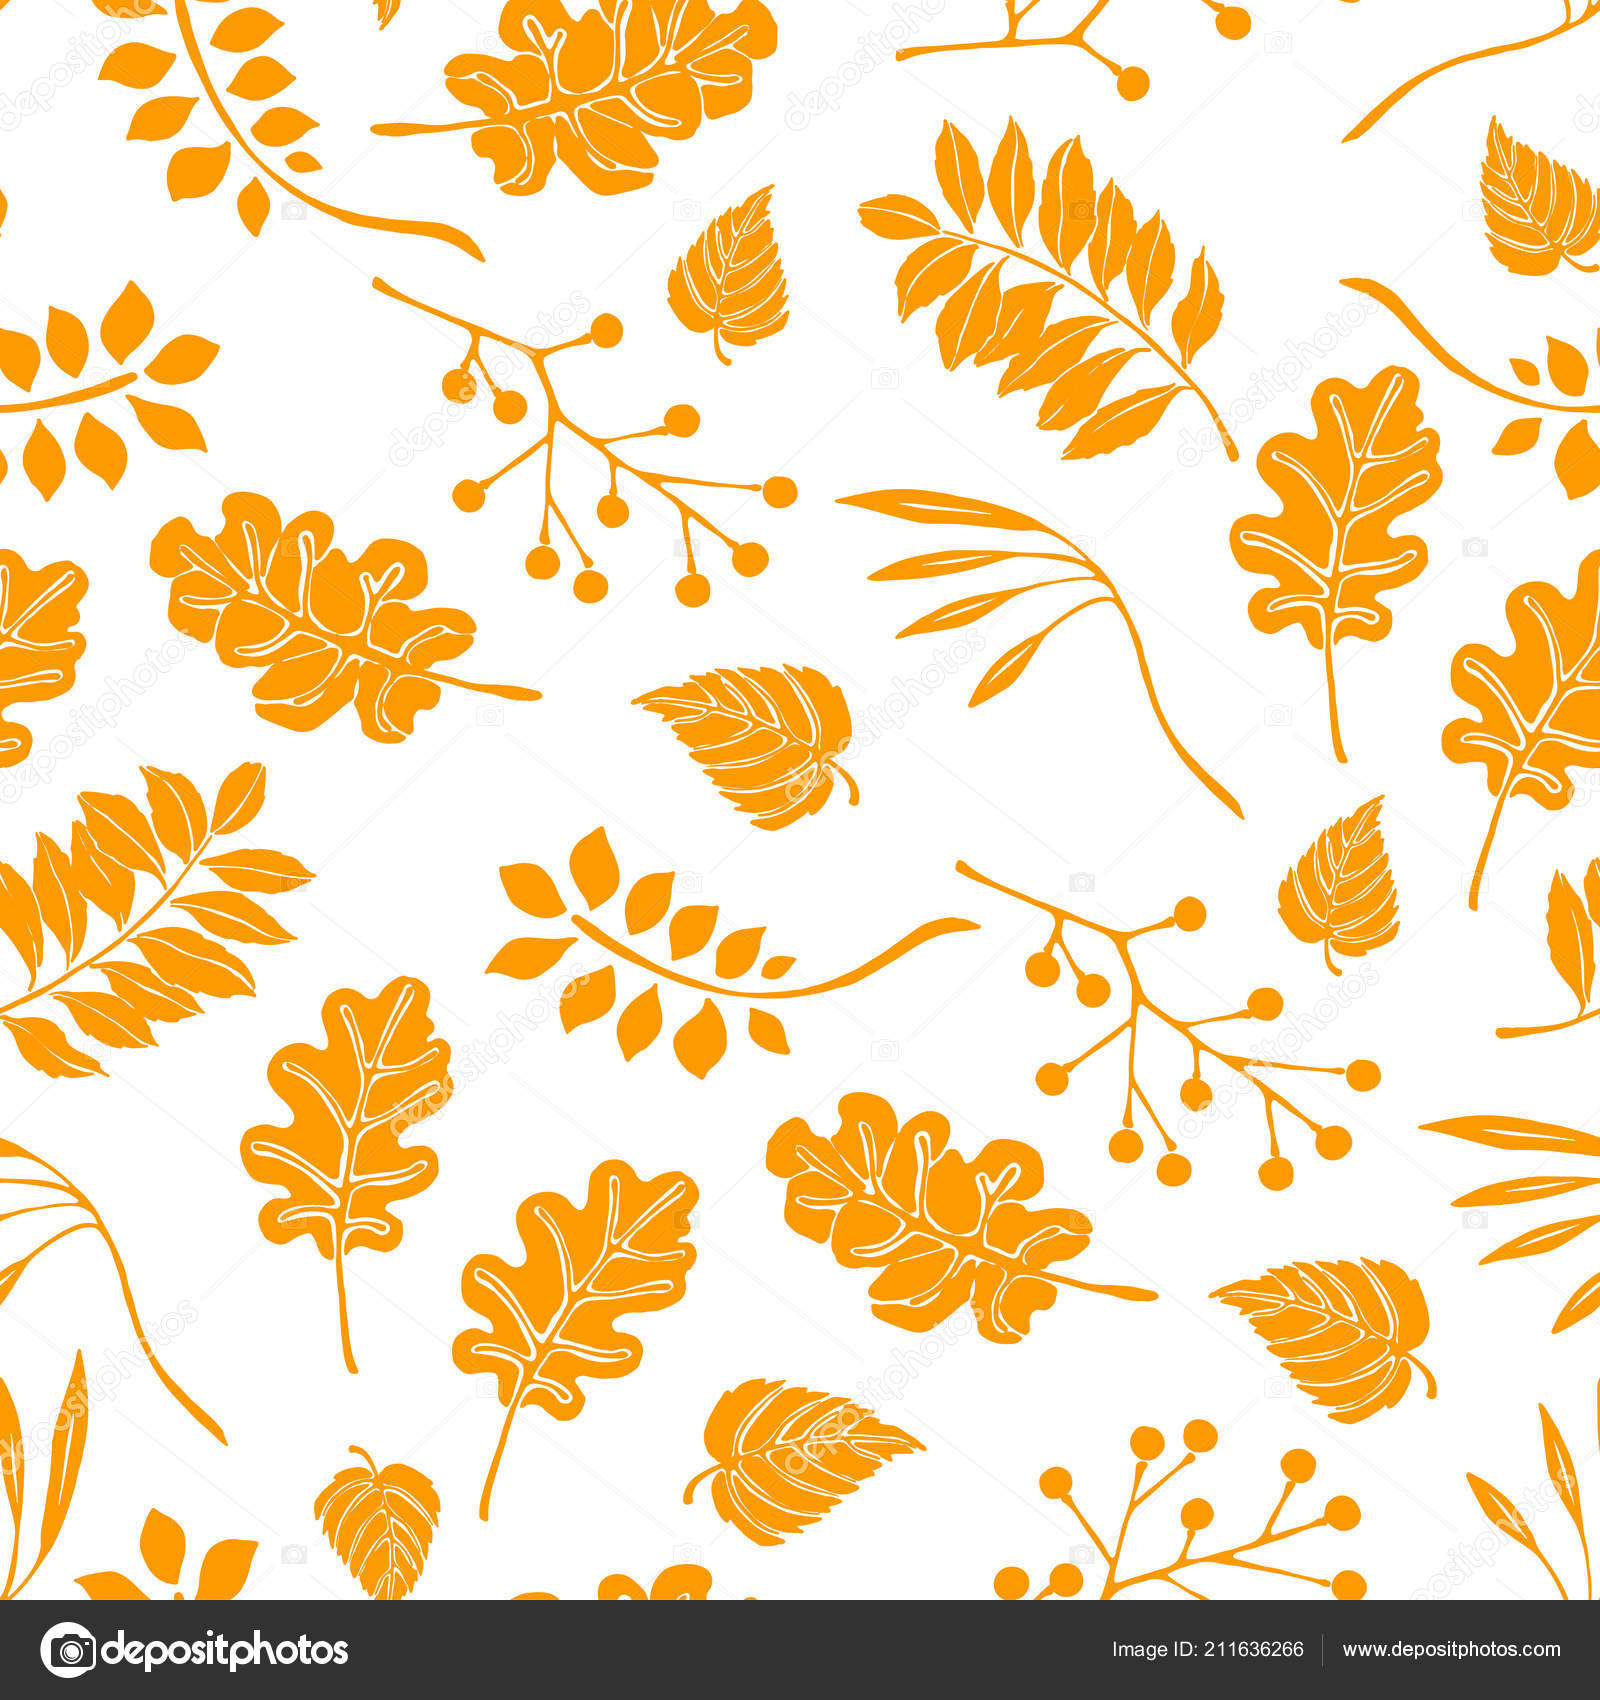 Autumn Leaves In Cartoon Style Seamless Pattern A Cute Background Seasonal Banner Stock Vector C Bsking 211636266